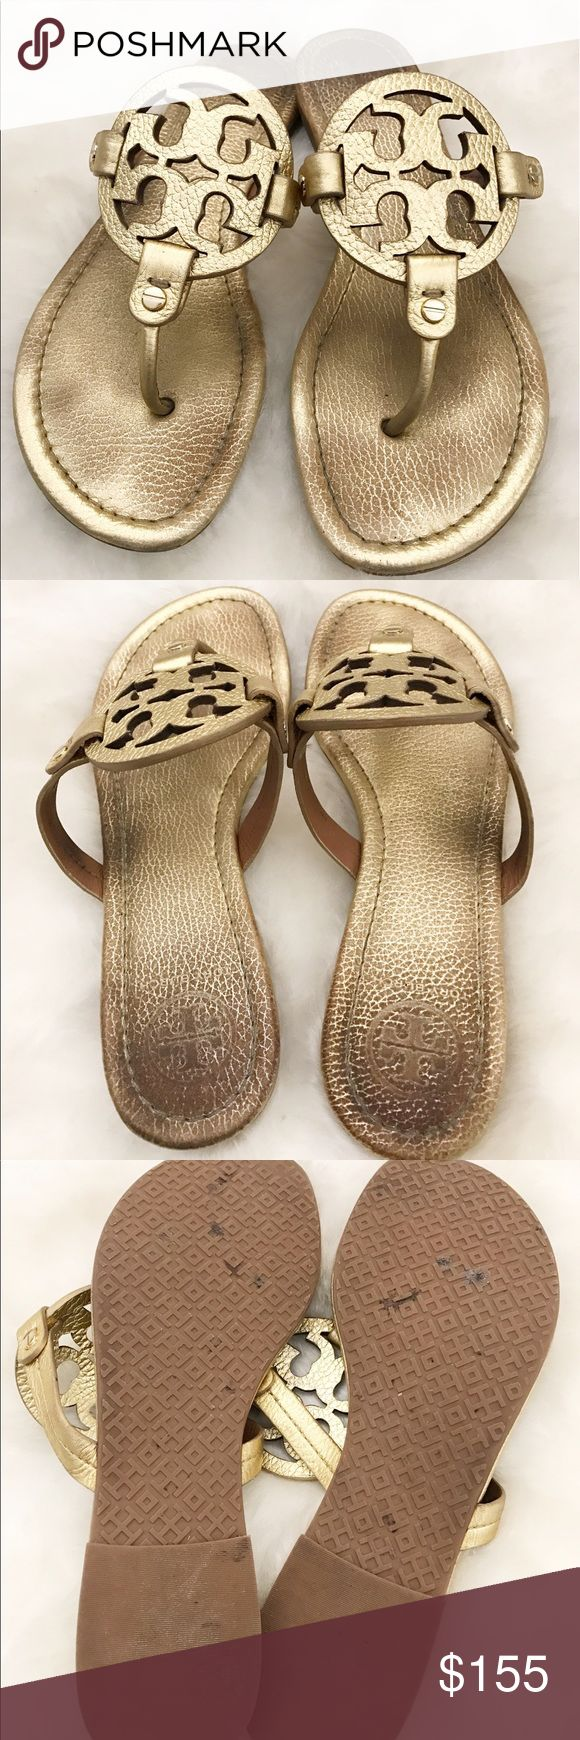 Tory Burch Miller Pebbled Leather Logo Sandals 9.5 These are a pair of Tory Burch gold pebbled leather logo sandals! Size 9.5 😃 Tory Burch Shoes Sandals